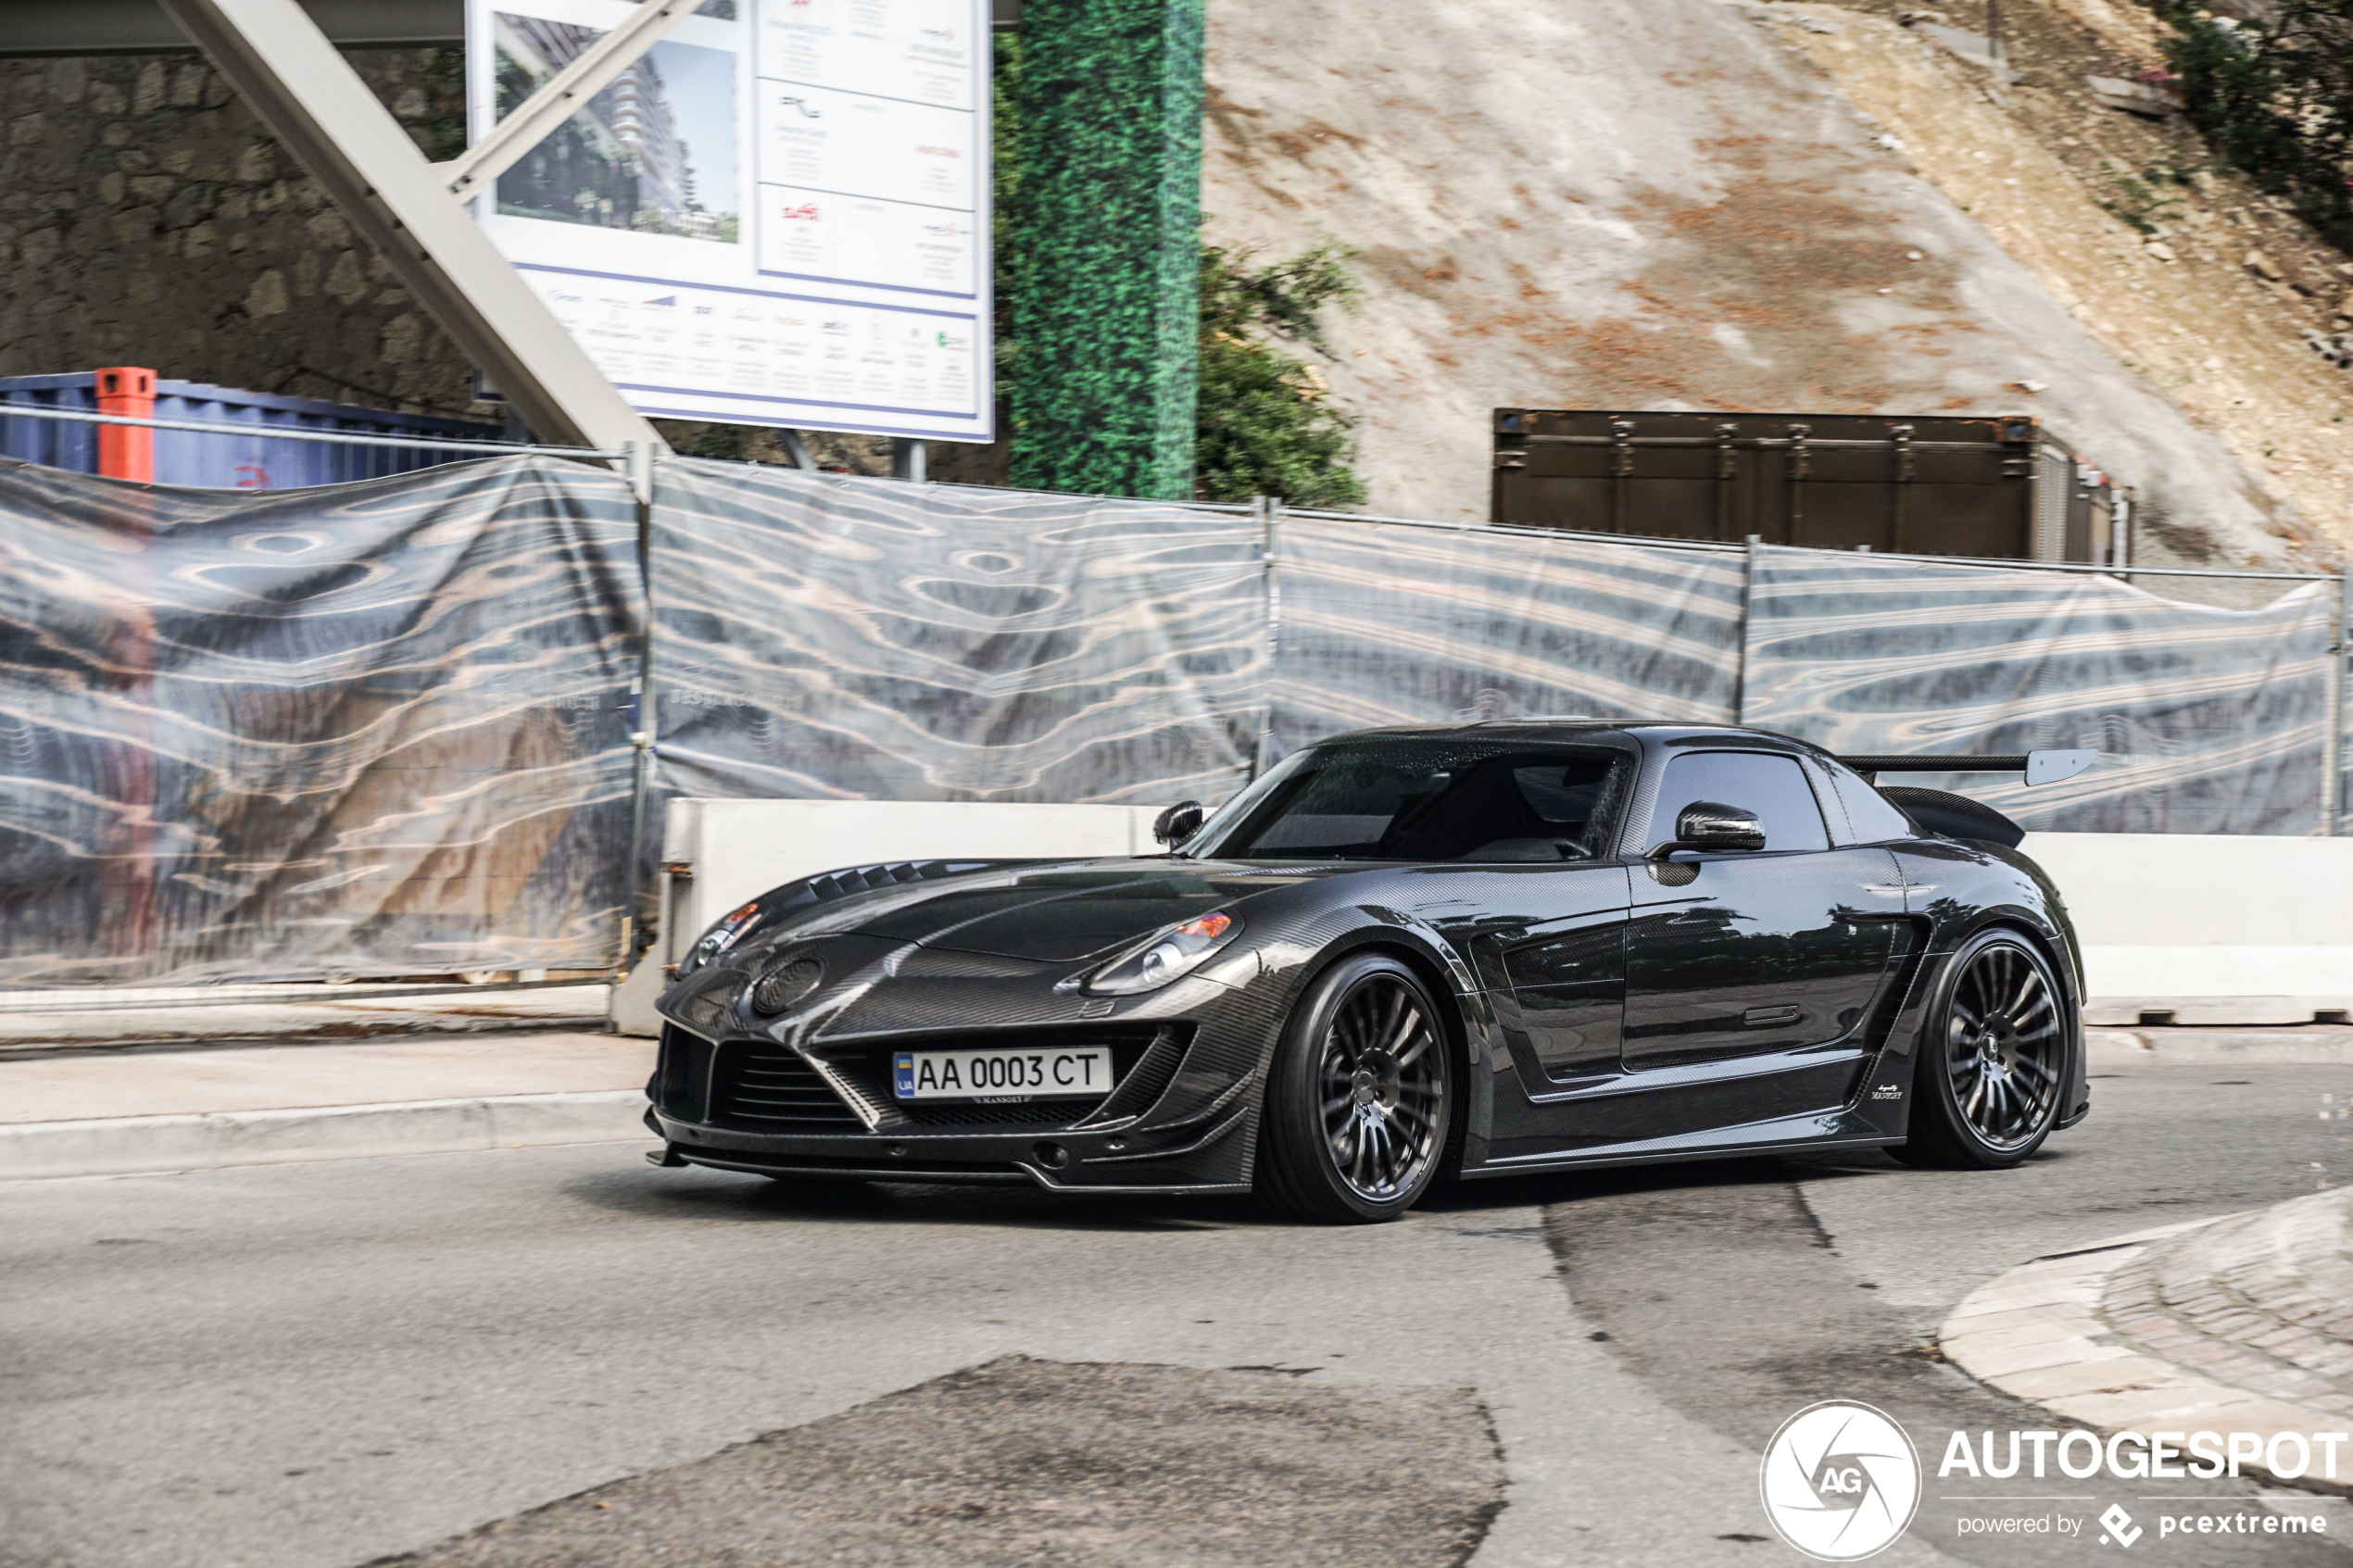 Mercedes-Benz Mansory SLS AMG Cormeum is something different